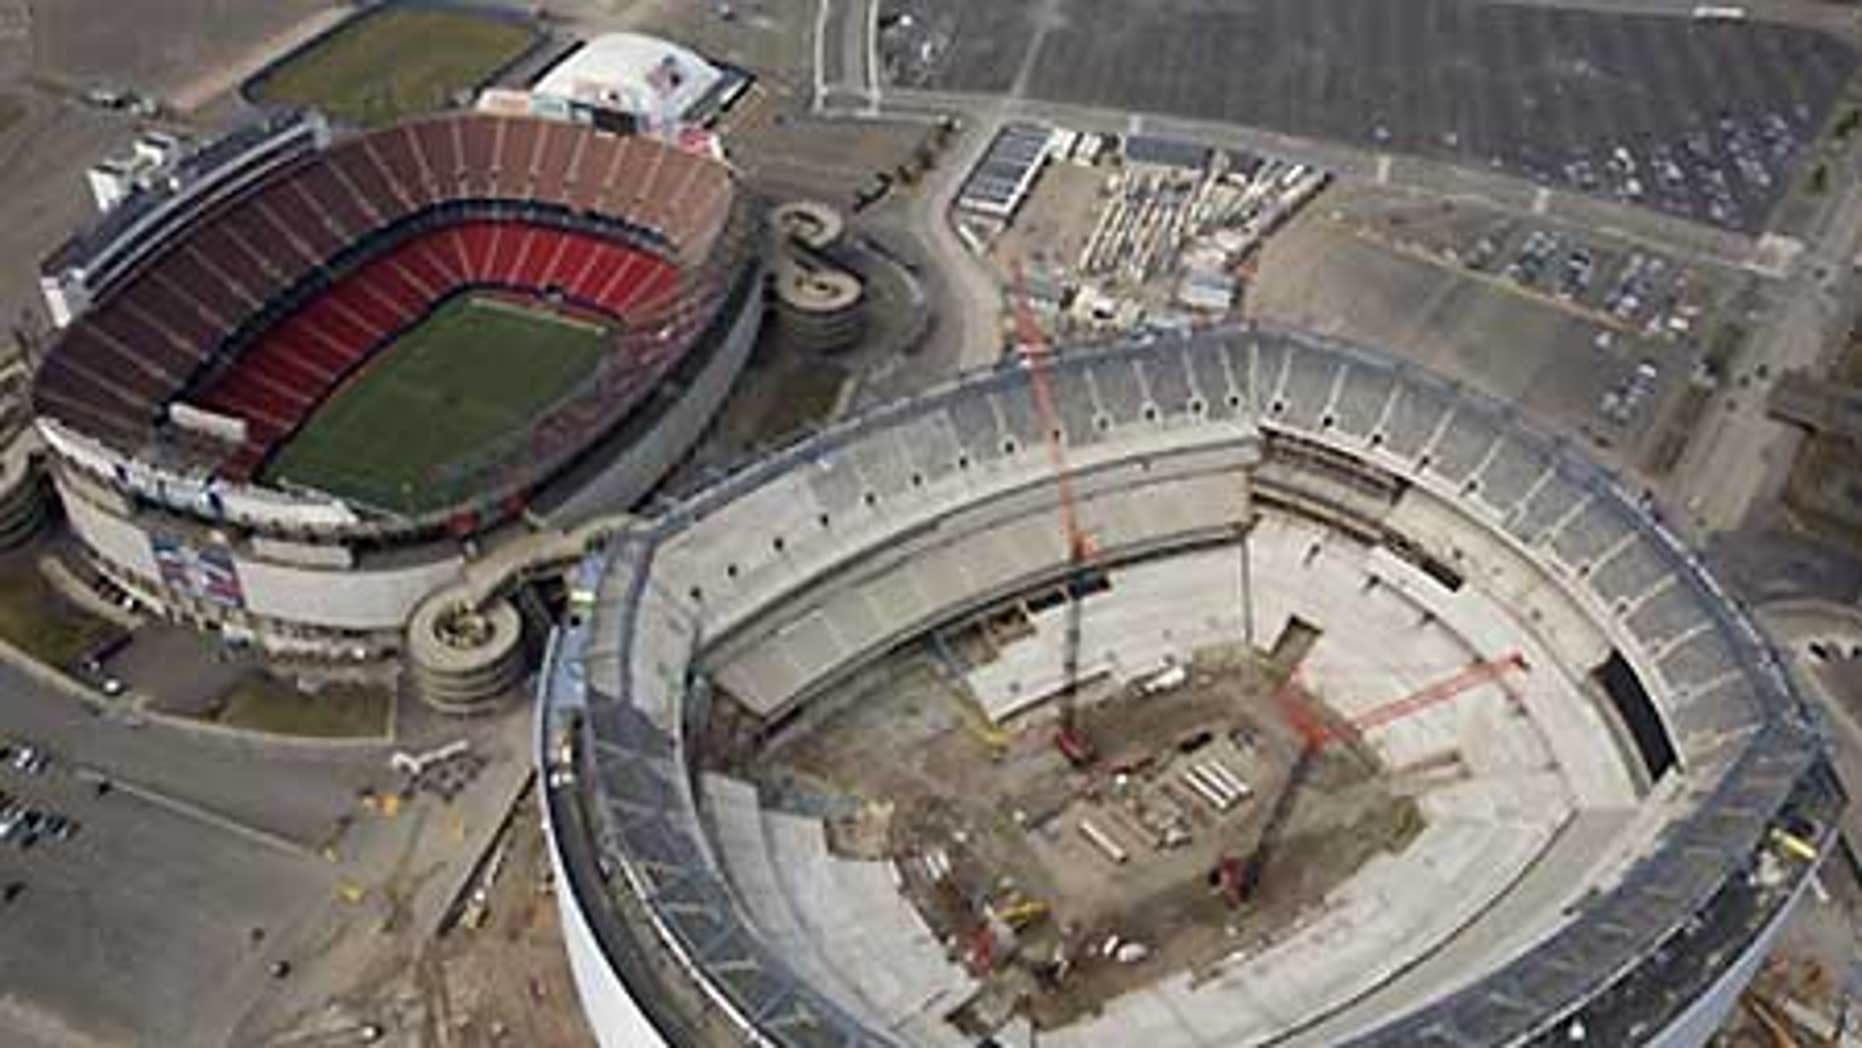 March 22: The under-construction Giants Stadium, right, and the older and still in use Giants Stadium, left.